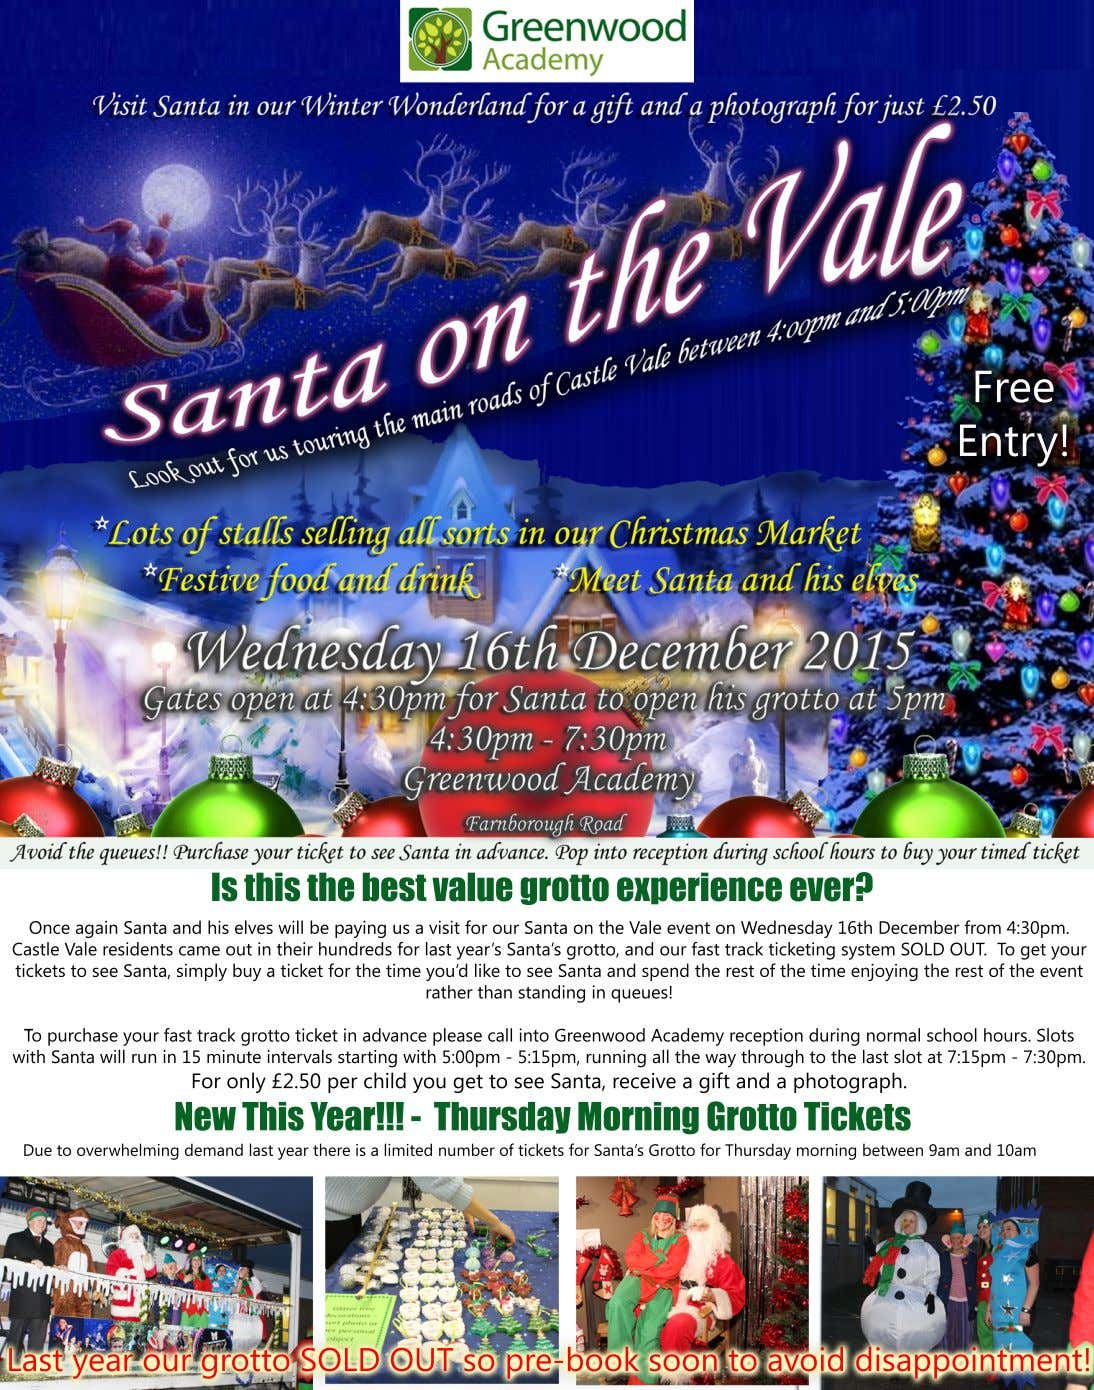 Free Entry! Is this the best value grotto experience ever? Once again Santa and his